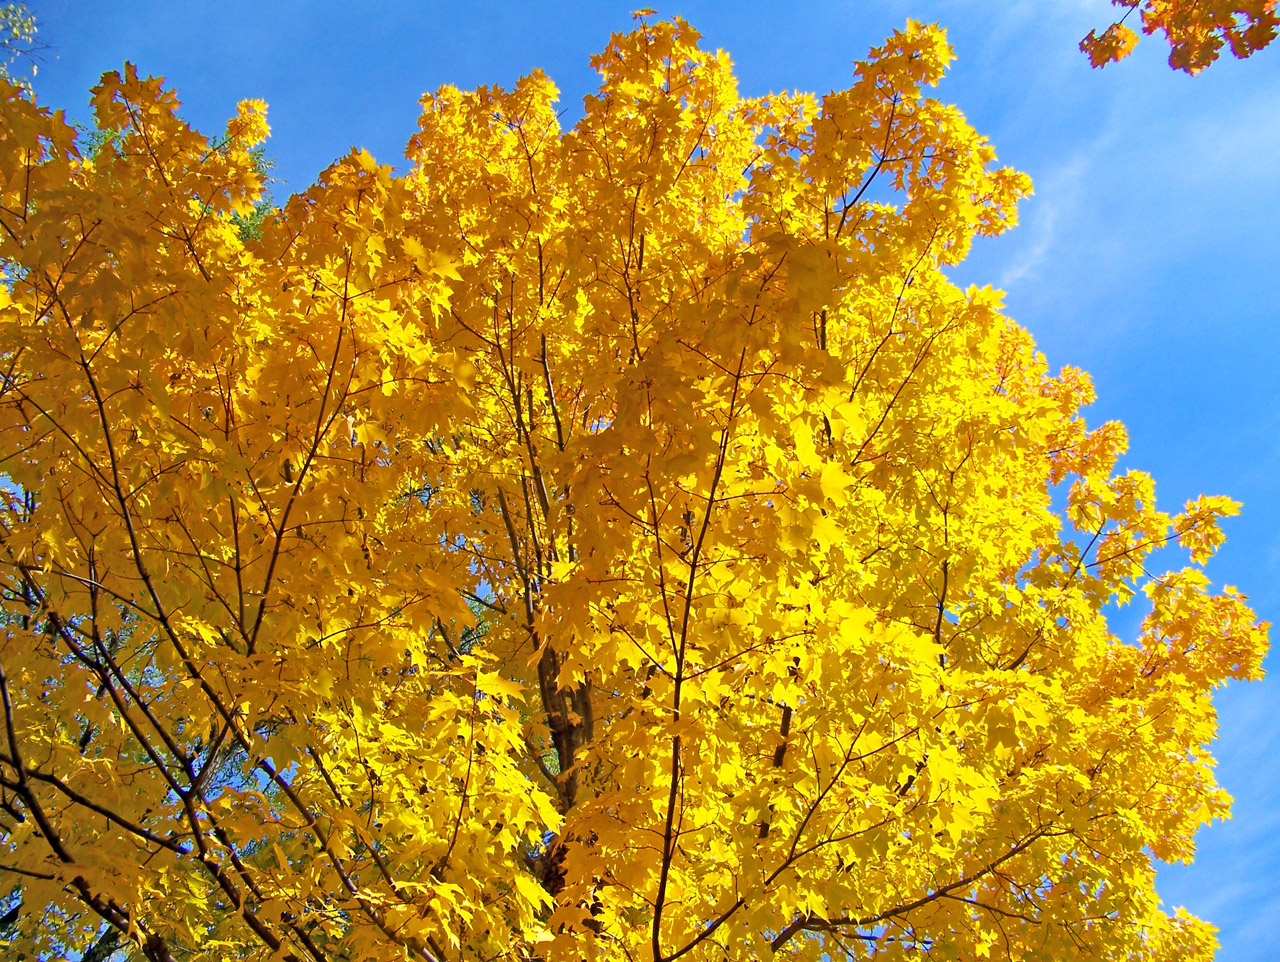 A golden yellow maple brings fall into your landscaping. Call Cypress Lawn today for all your fall landscaping needs!